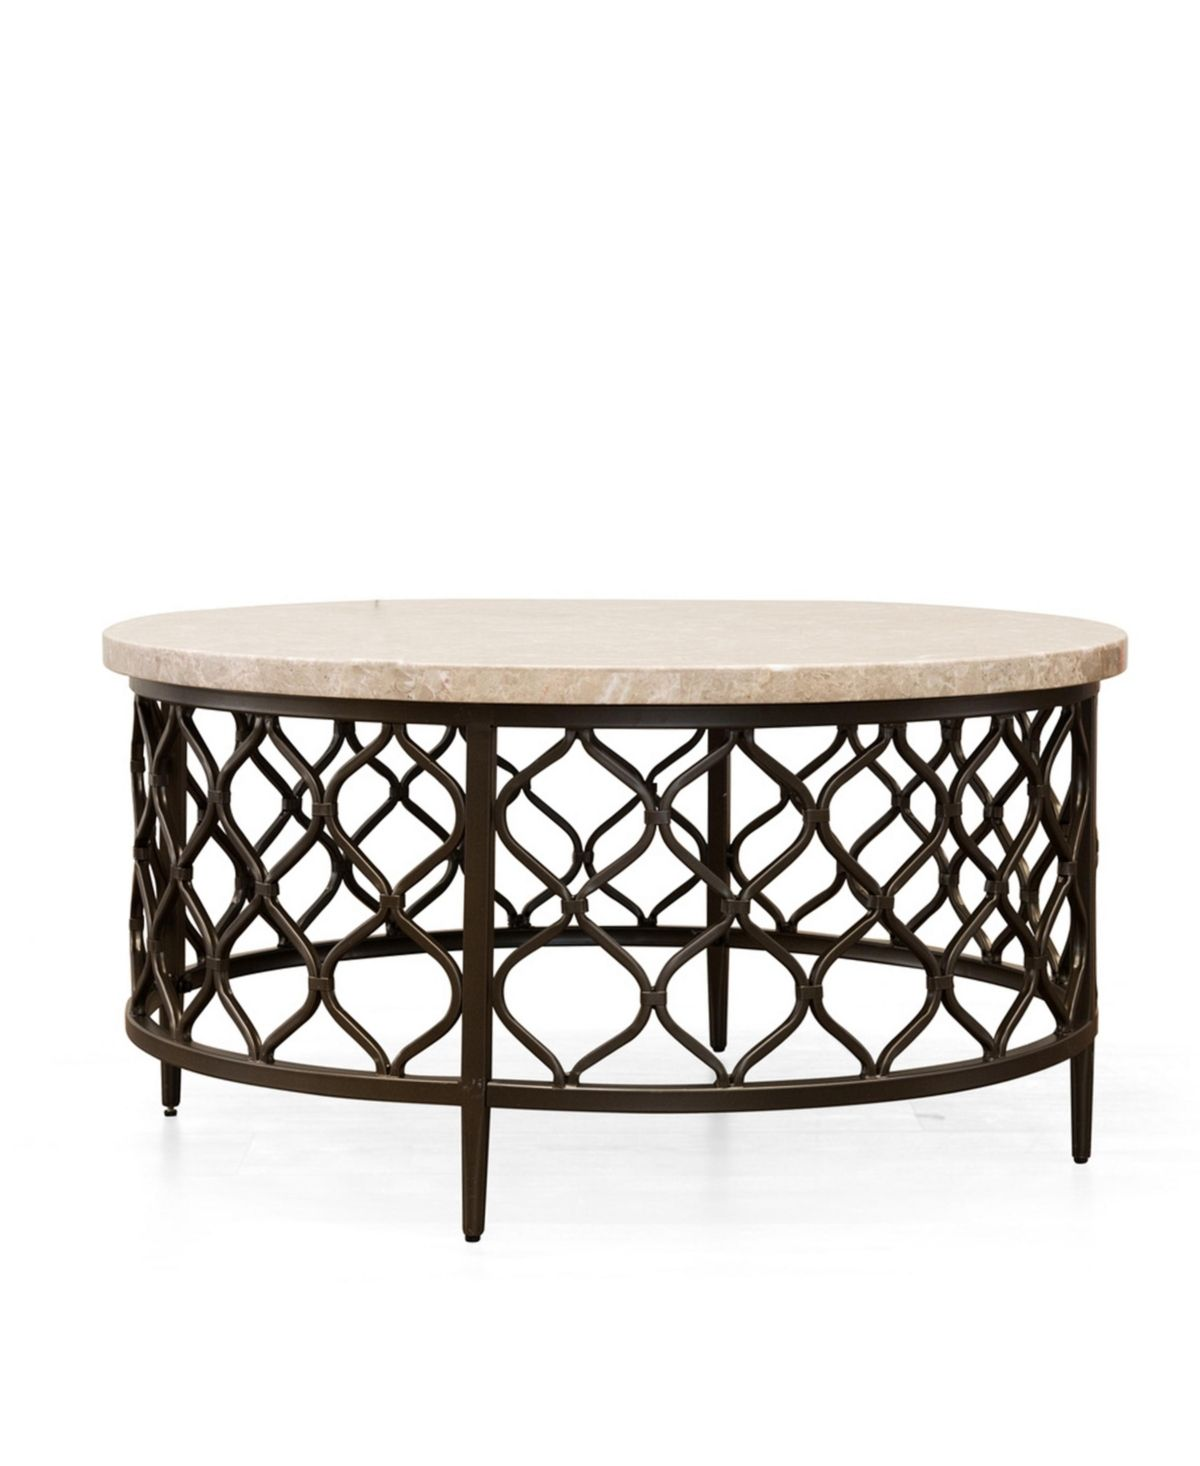 Steve Silver Vivvie Cocktail Table Reviews Furniture Macy S Stone Coffee Table Coffee Table Wood Coffee Table [ 1466 x 1200 Pixel ]